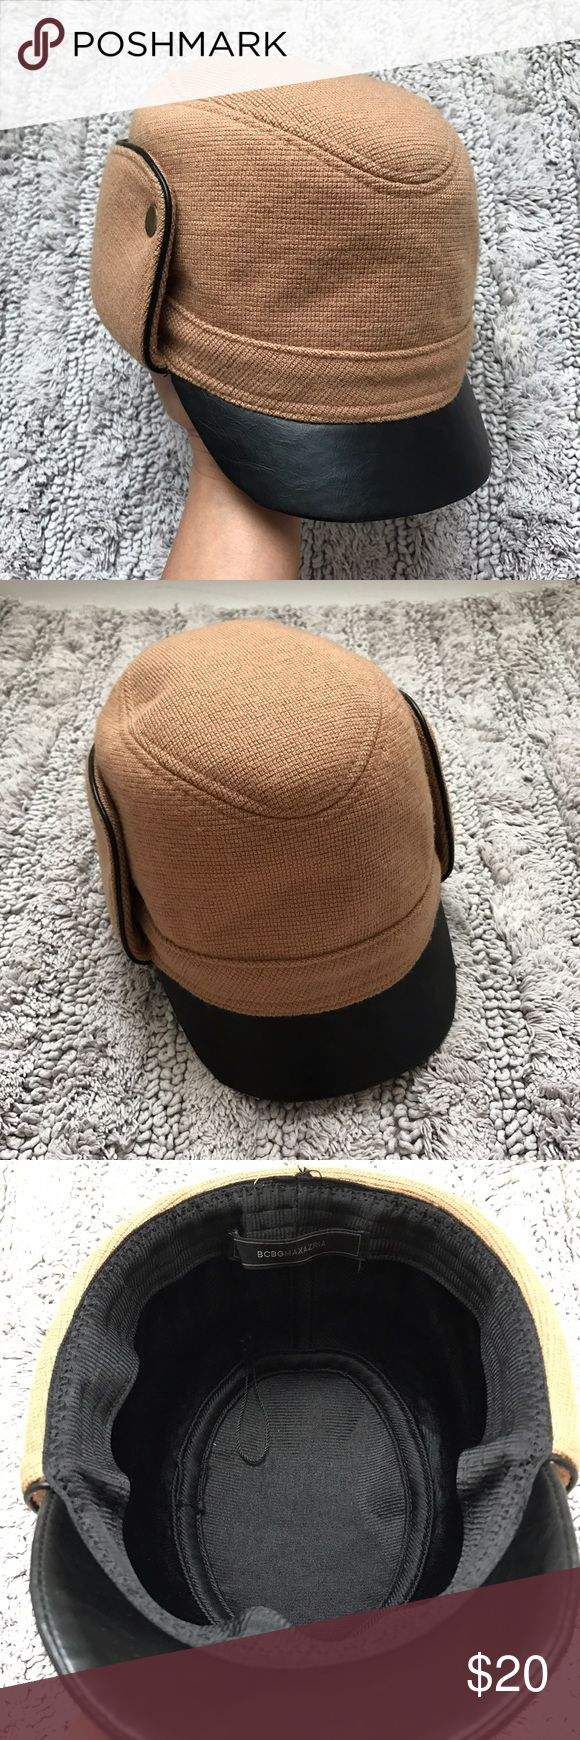 BCBG Pilot Hat 🎩 Never worn hat. I bought this hat because I thought it looked super cool, but I never figured out how to wear it since I'm not a hat person 😩 BCBGMaxAzria Accessories Hats